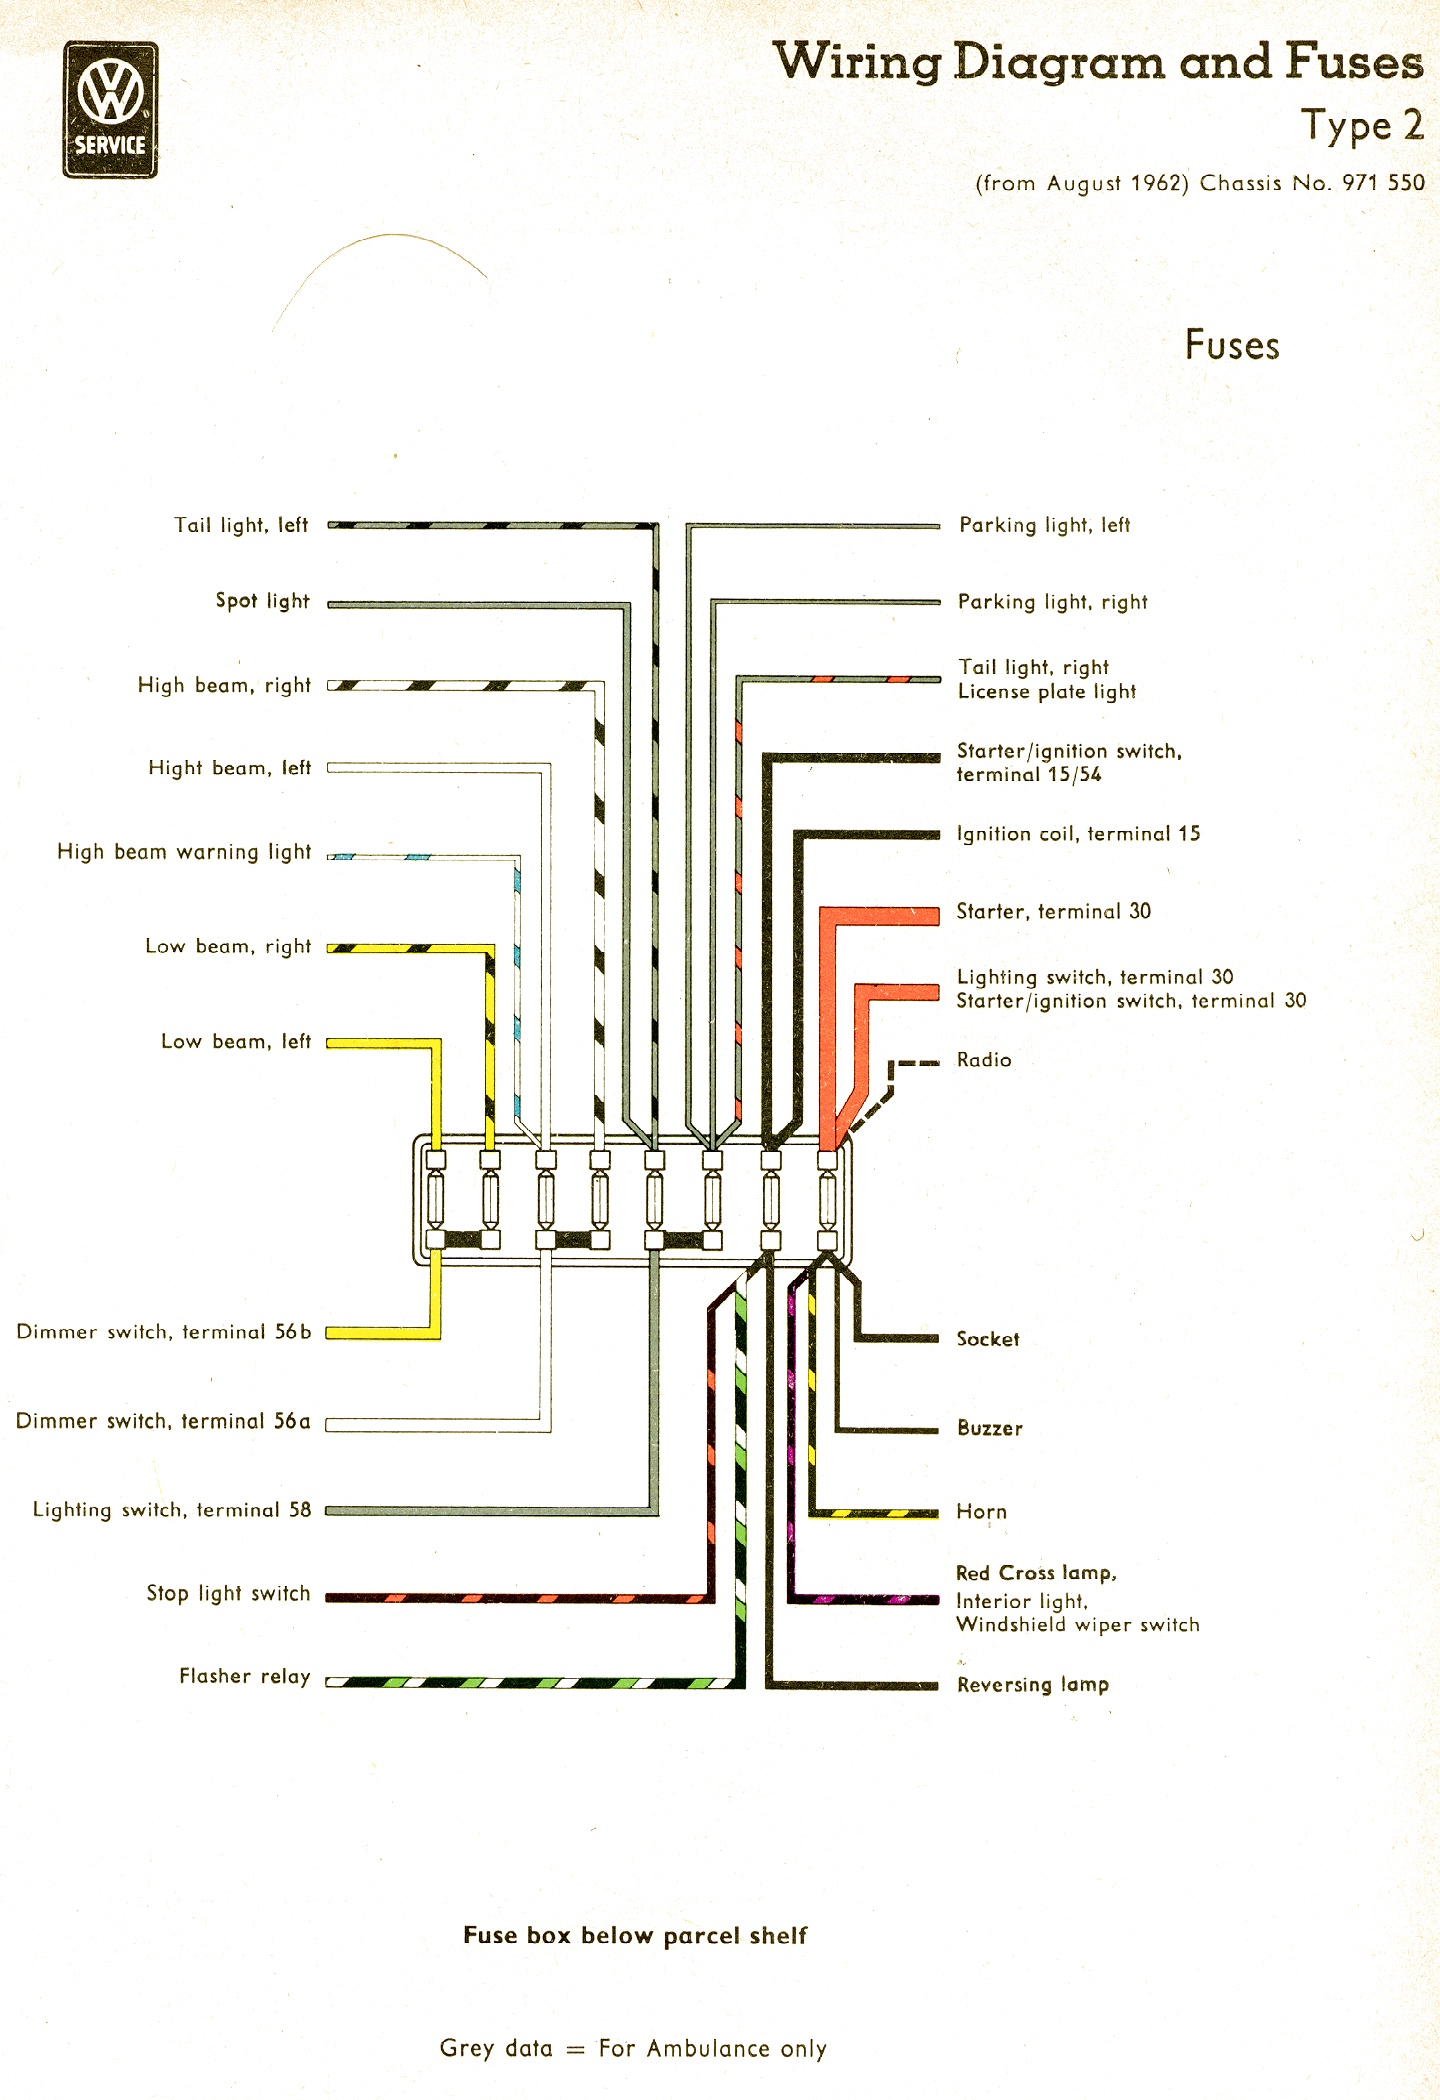 Ambulance Wiring Diagram | Wiring Liry on smart car ambulance, pueblo colorado ambulance, 1986 army ambulance, red cross ambulance, m997 ambulance, hummer ambulance, old ambulance, ford e-350 ambulance, tactical ambulance, m1035 ambulance, lifted cucv ambulance,